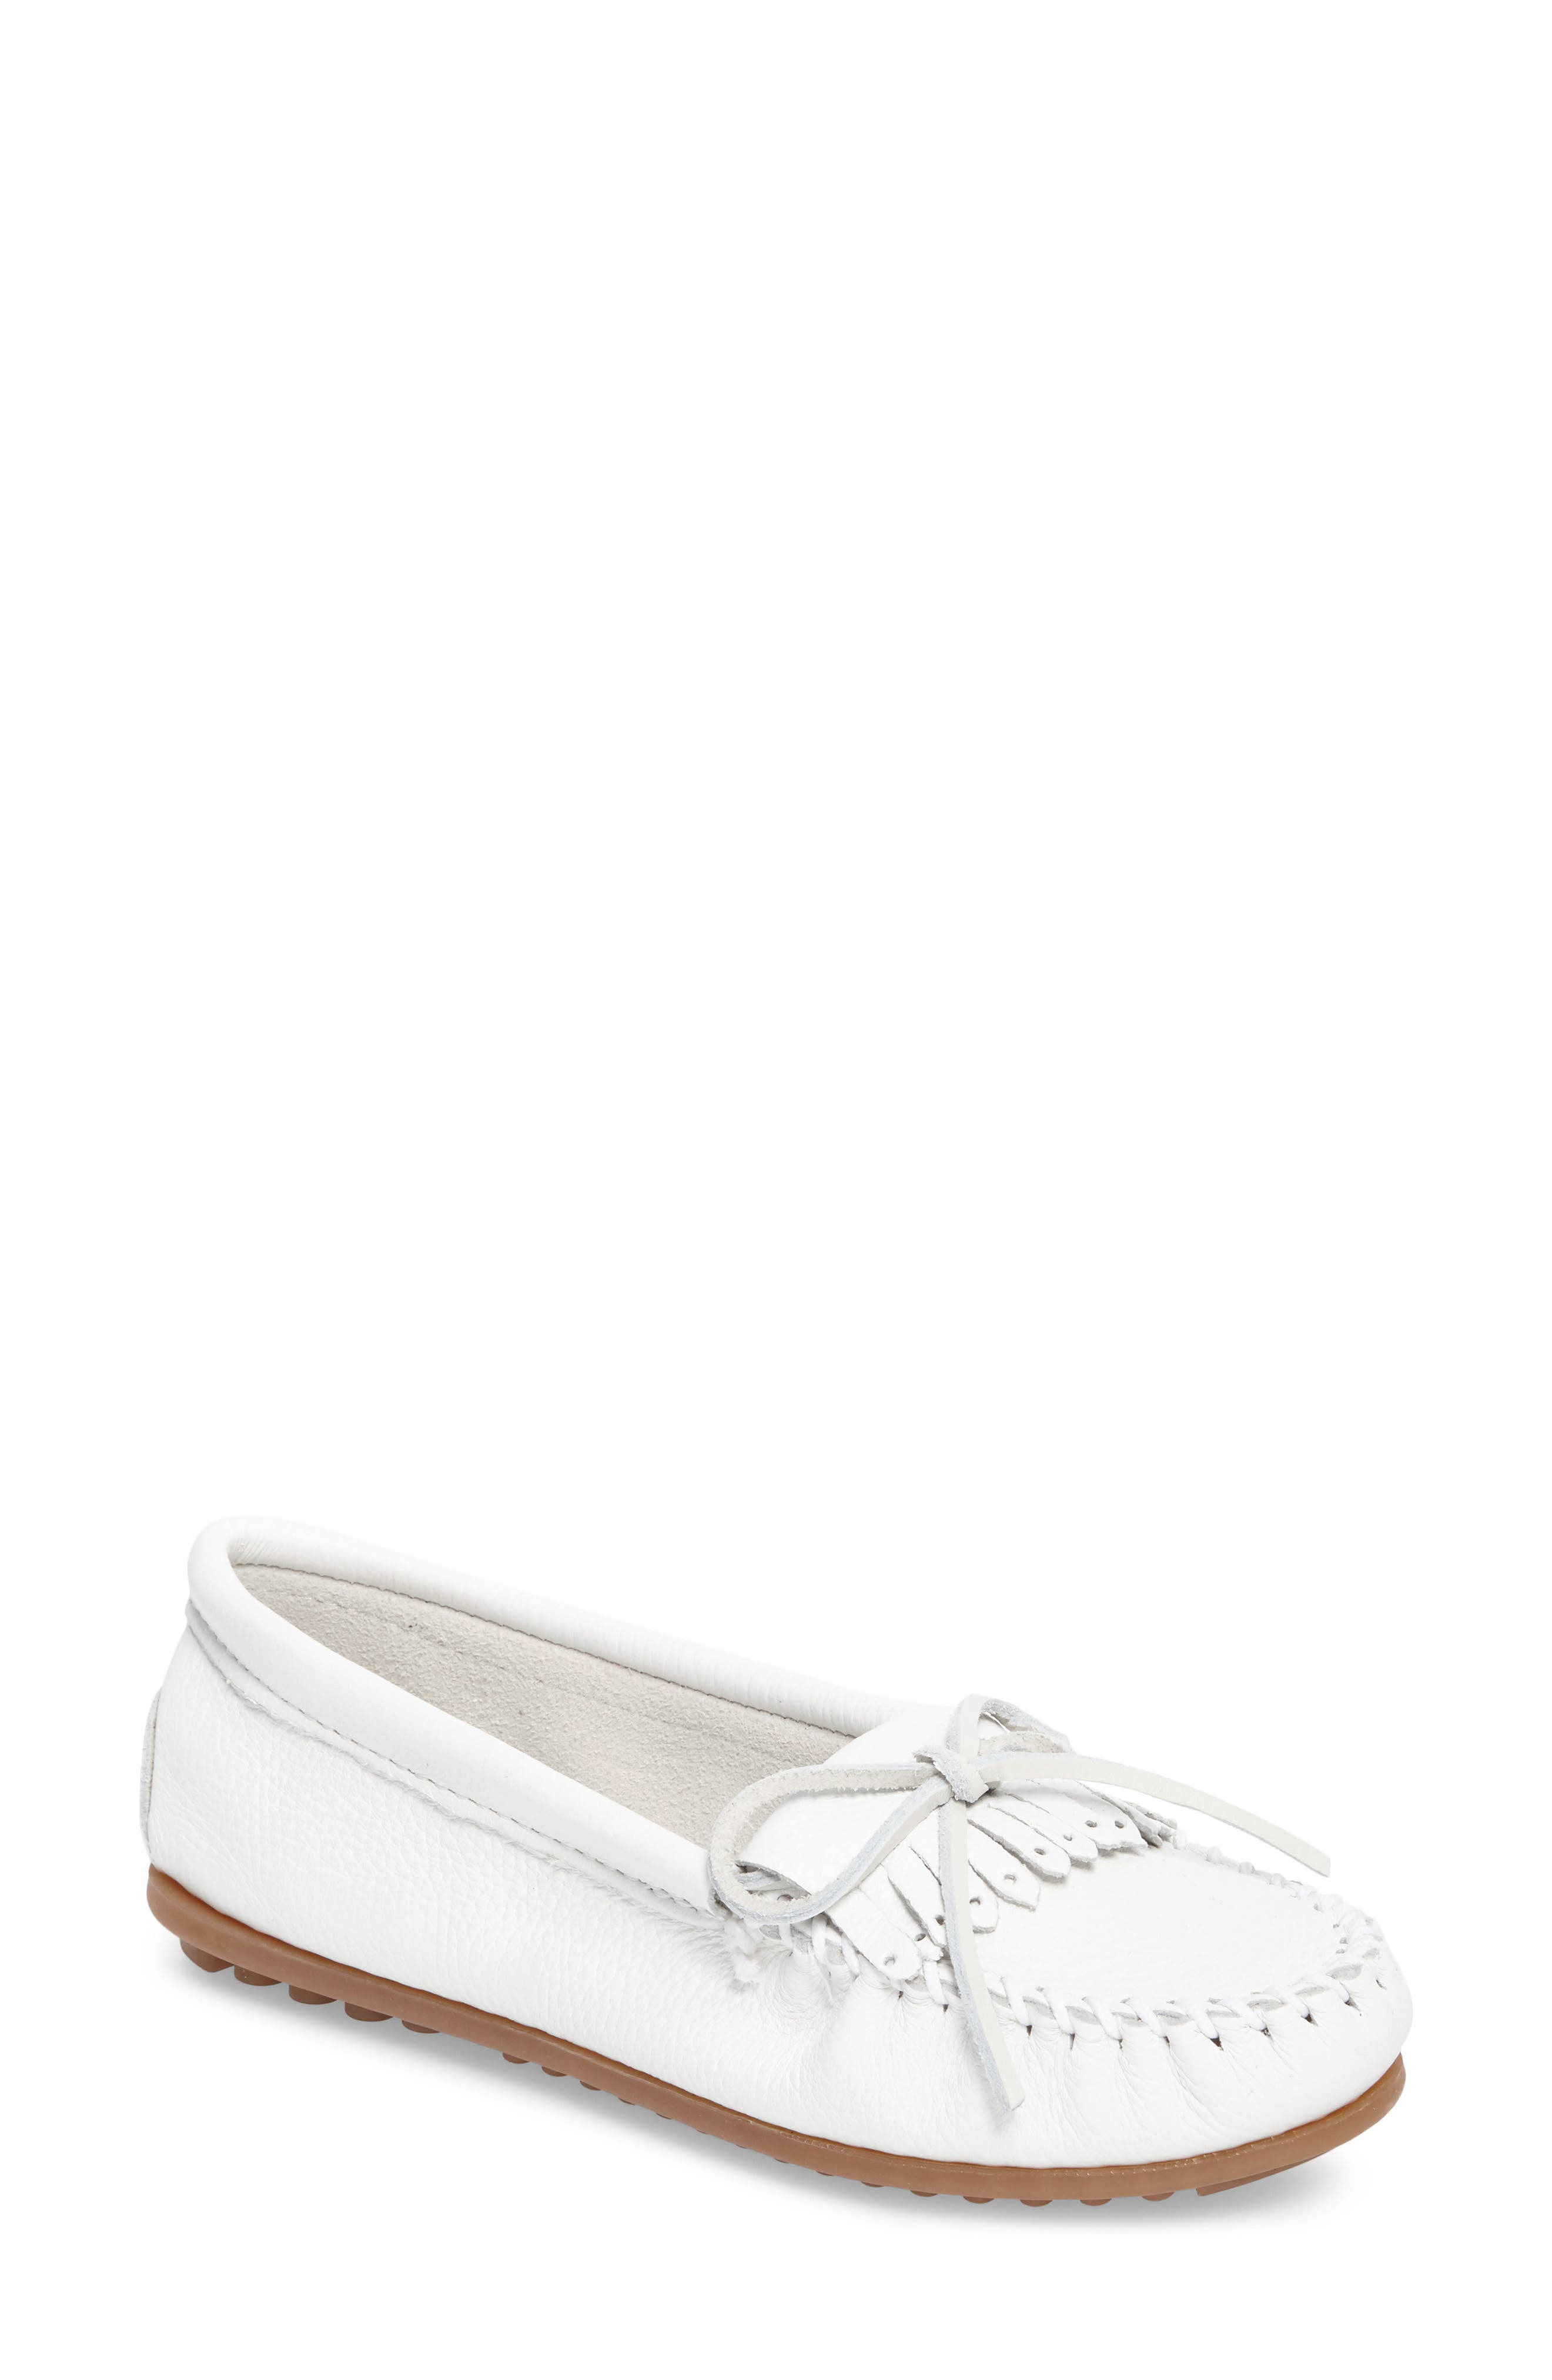 Kilty Moccasin,                             Main thumbnail 1, color,                             WHITE LEATHER